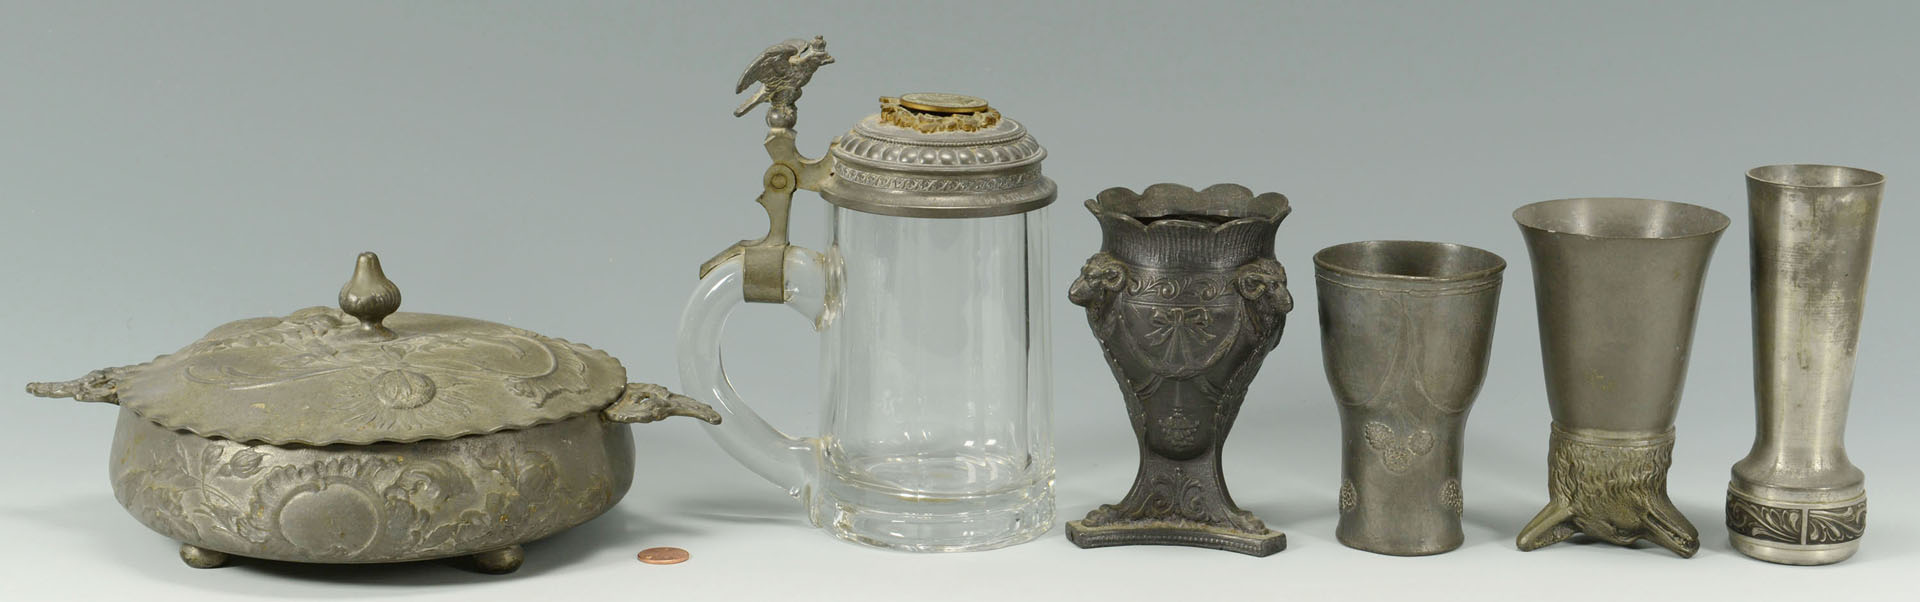 Lot 724: Six decorative pewter items including Jugendstil